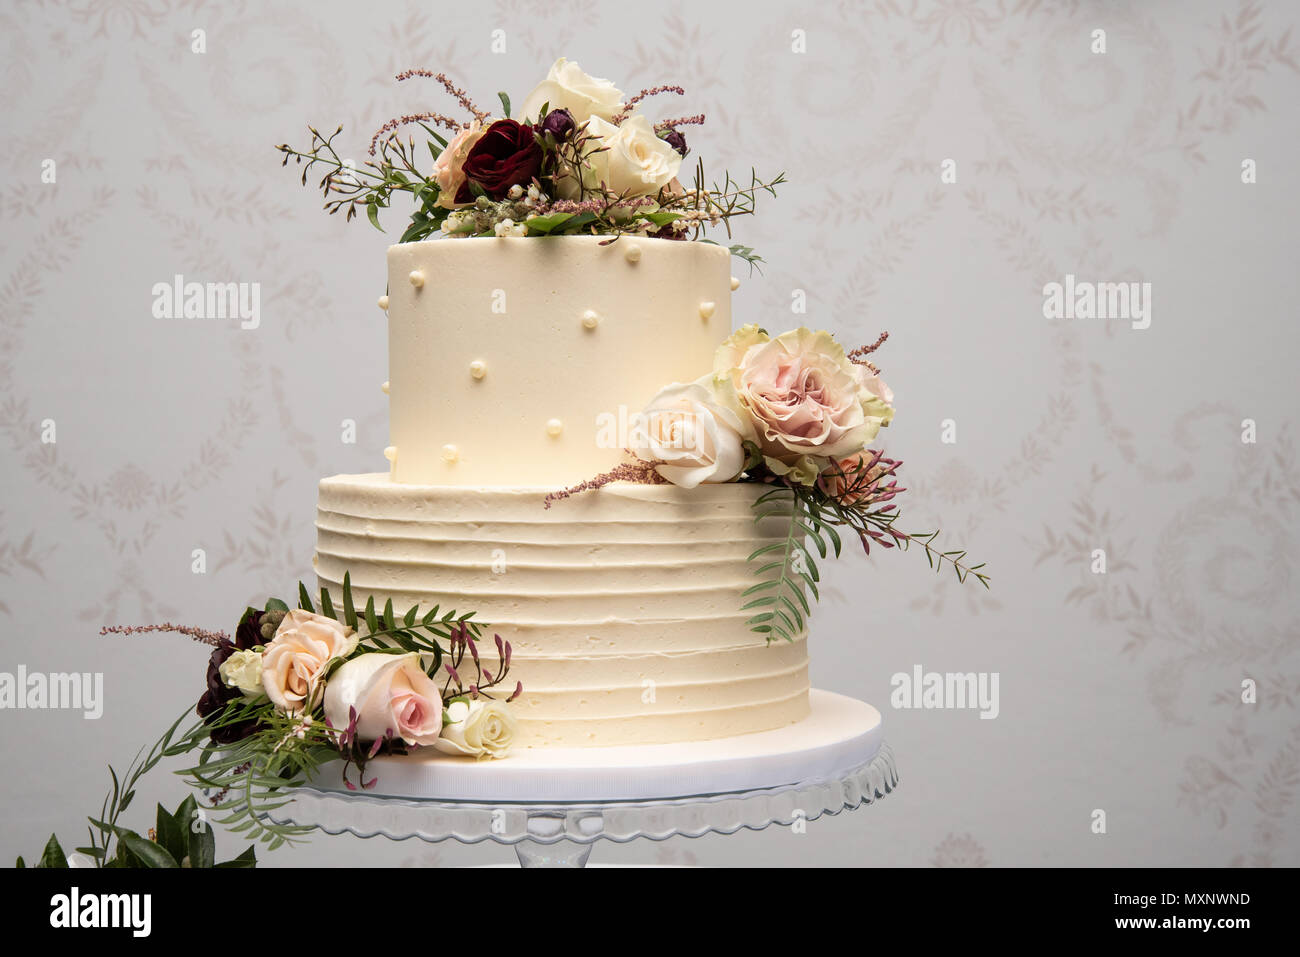 Champagne wedding cake with yellow and pink flower arrangements - Stock Image